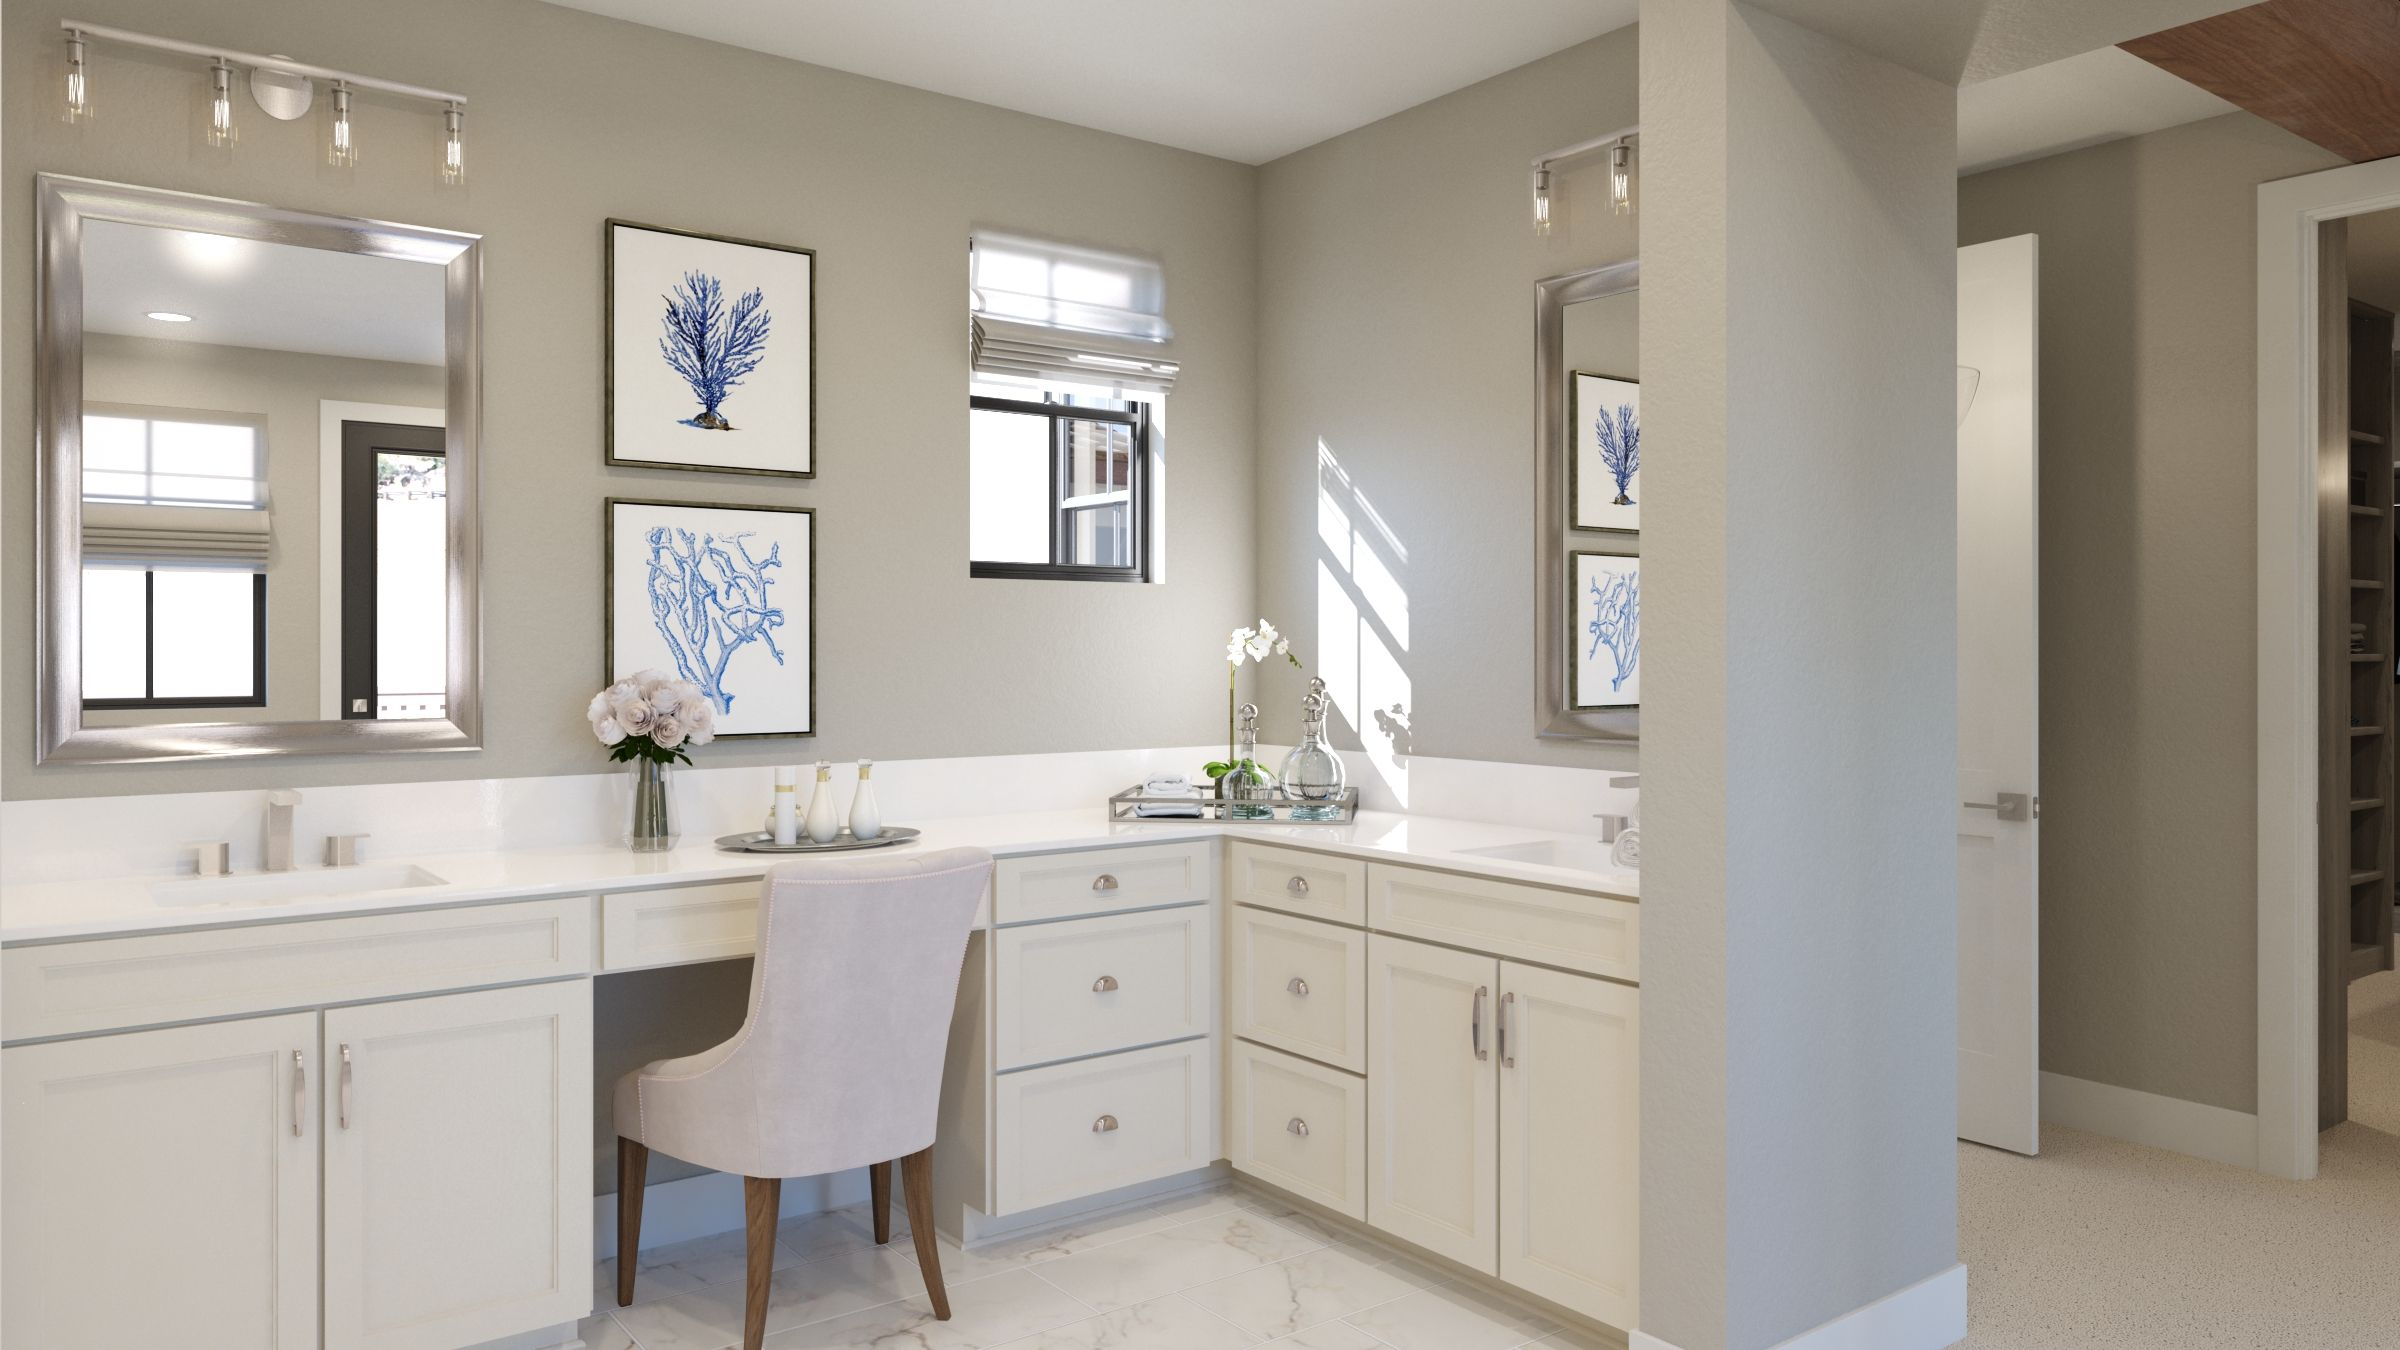 Bathroom featured in the Estate Two By G3 Urban in Los Angeles, CA